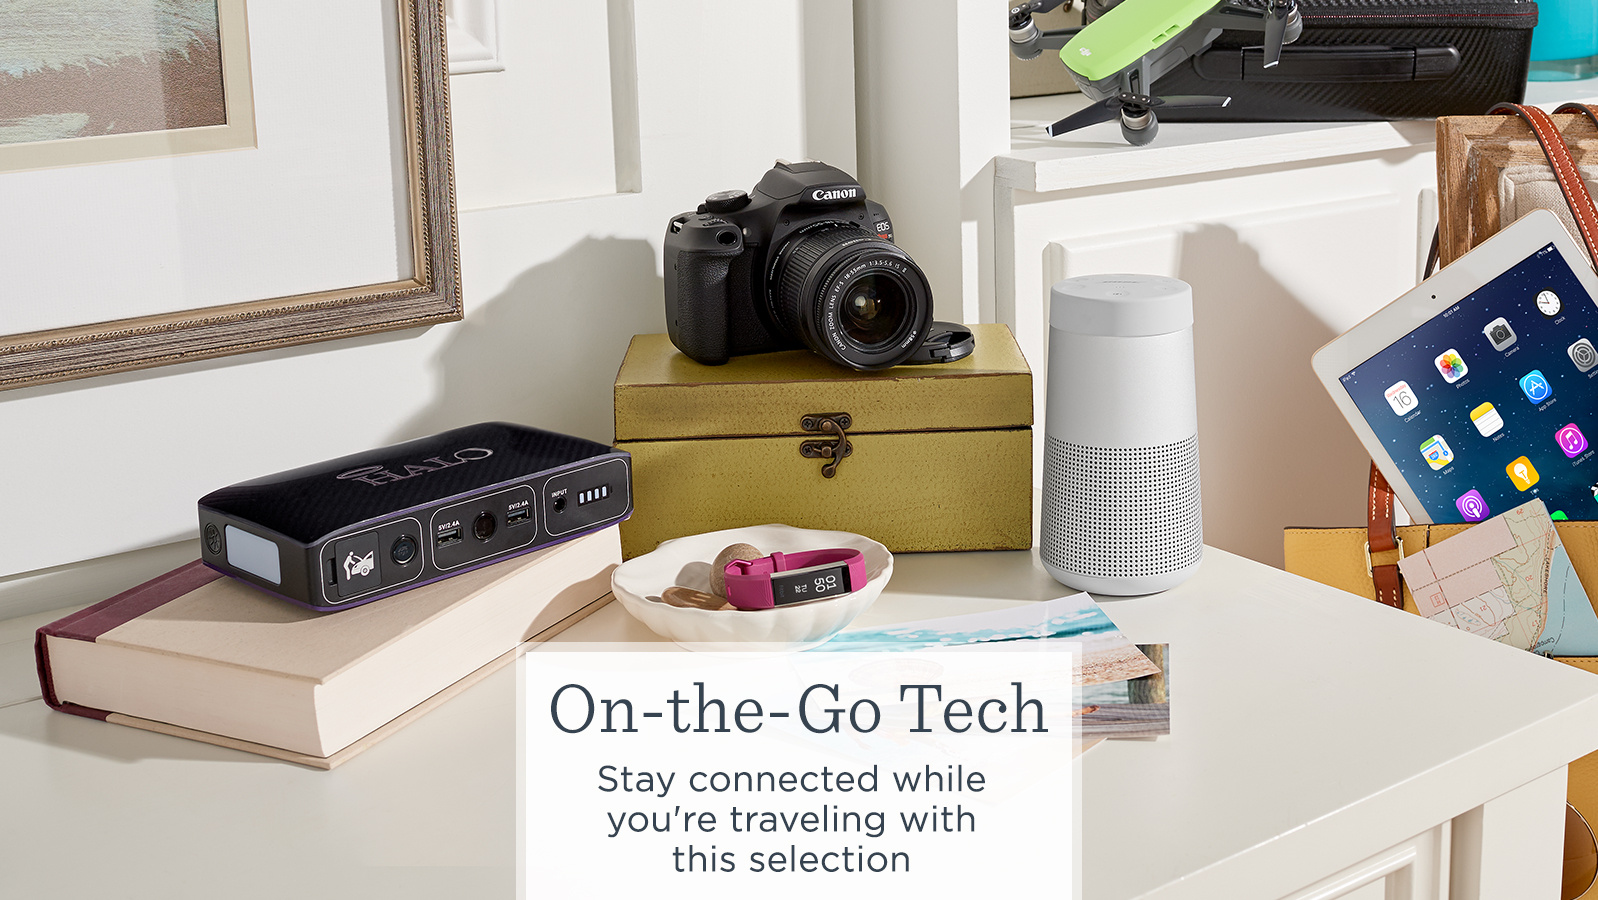 On-the-Go Tech.   Stay connected while you're traveling with this selection